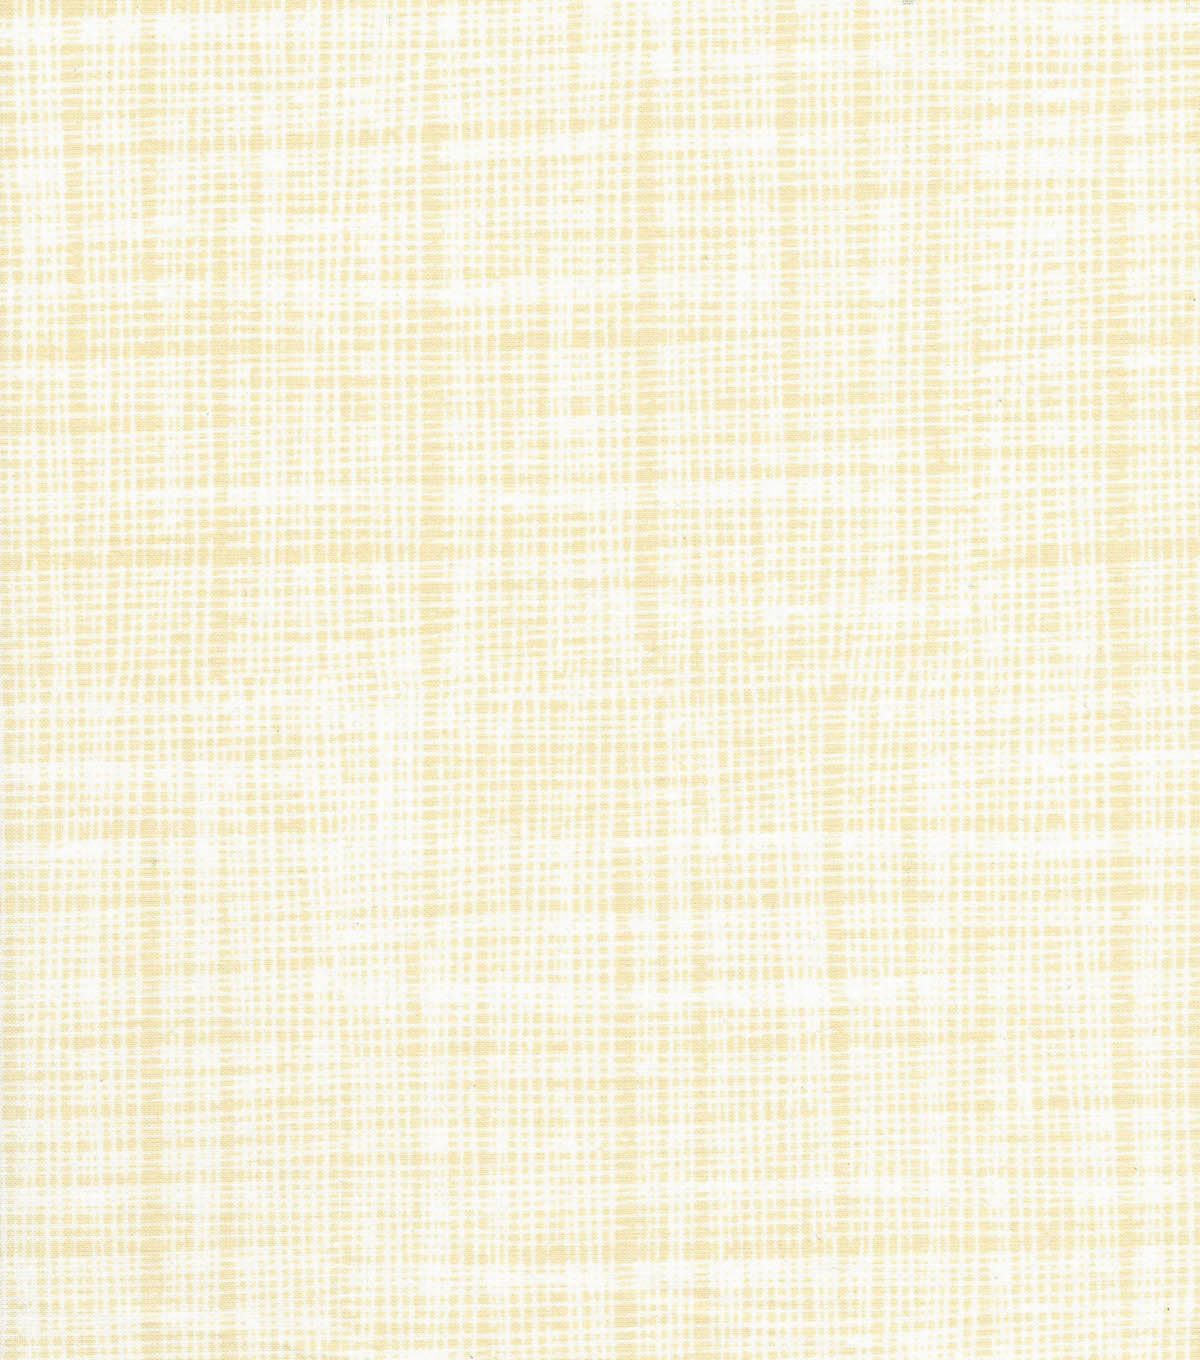 Quilter\u0027s Showcase Cotton Fabric -Screen Blender on Cream